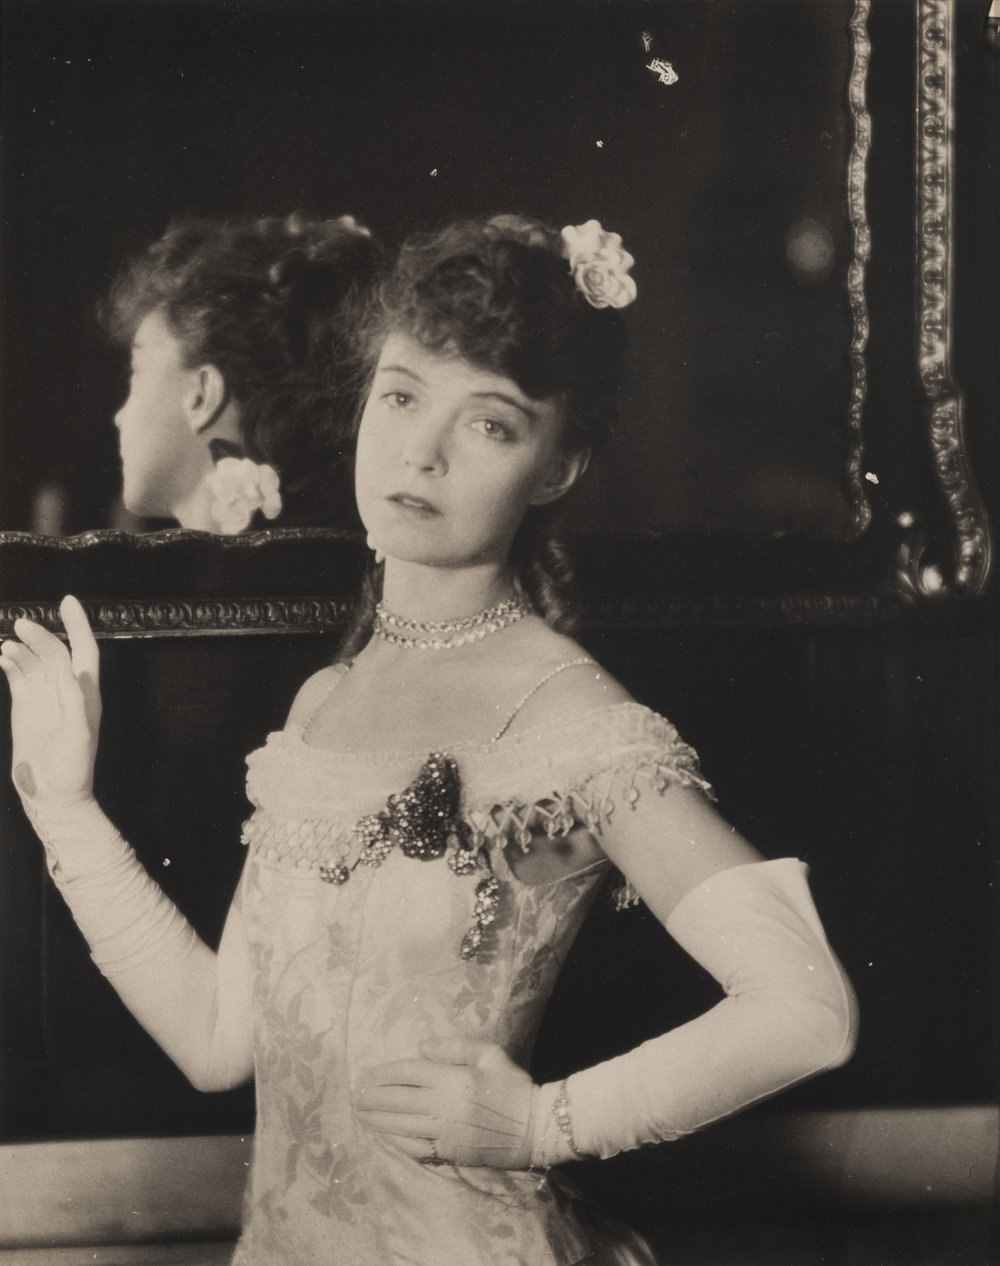 Lillian Gish at the Denver Opera House, 1932